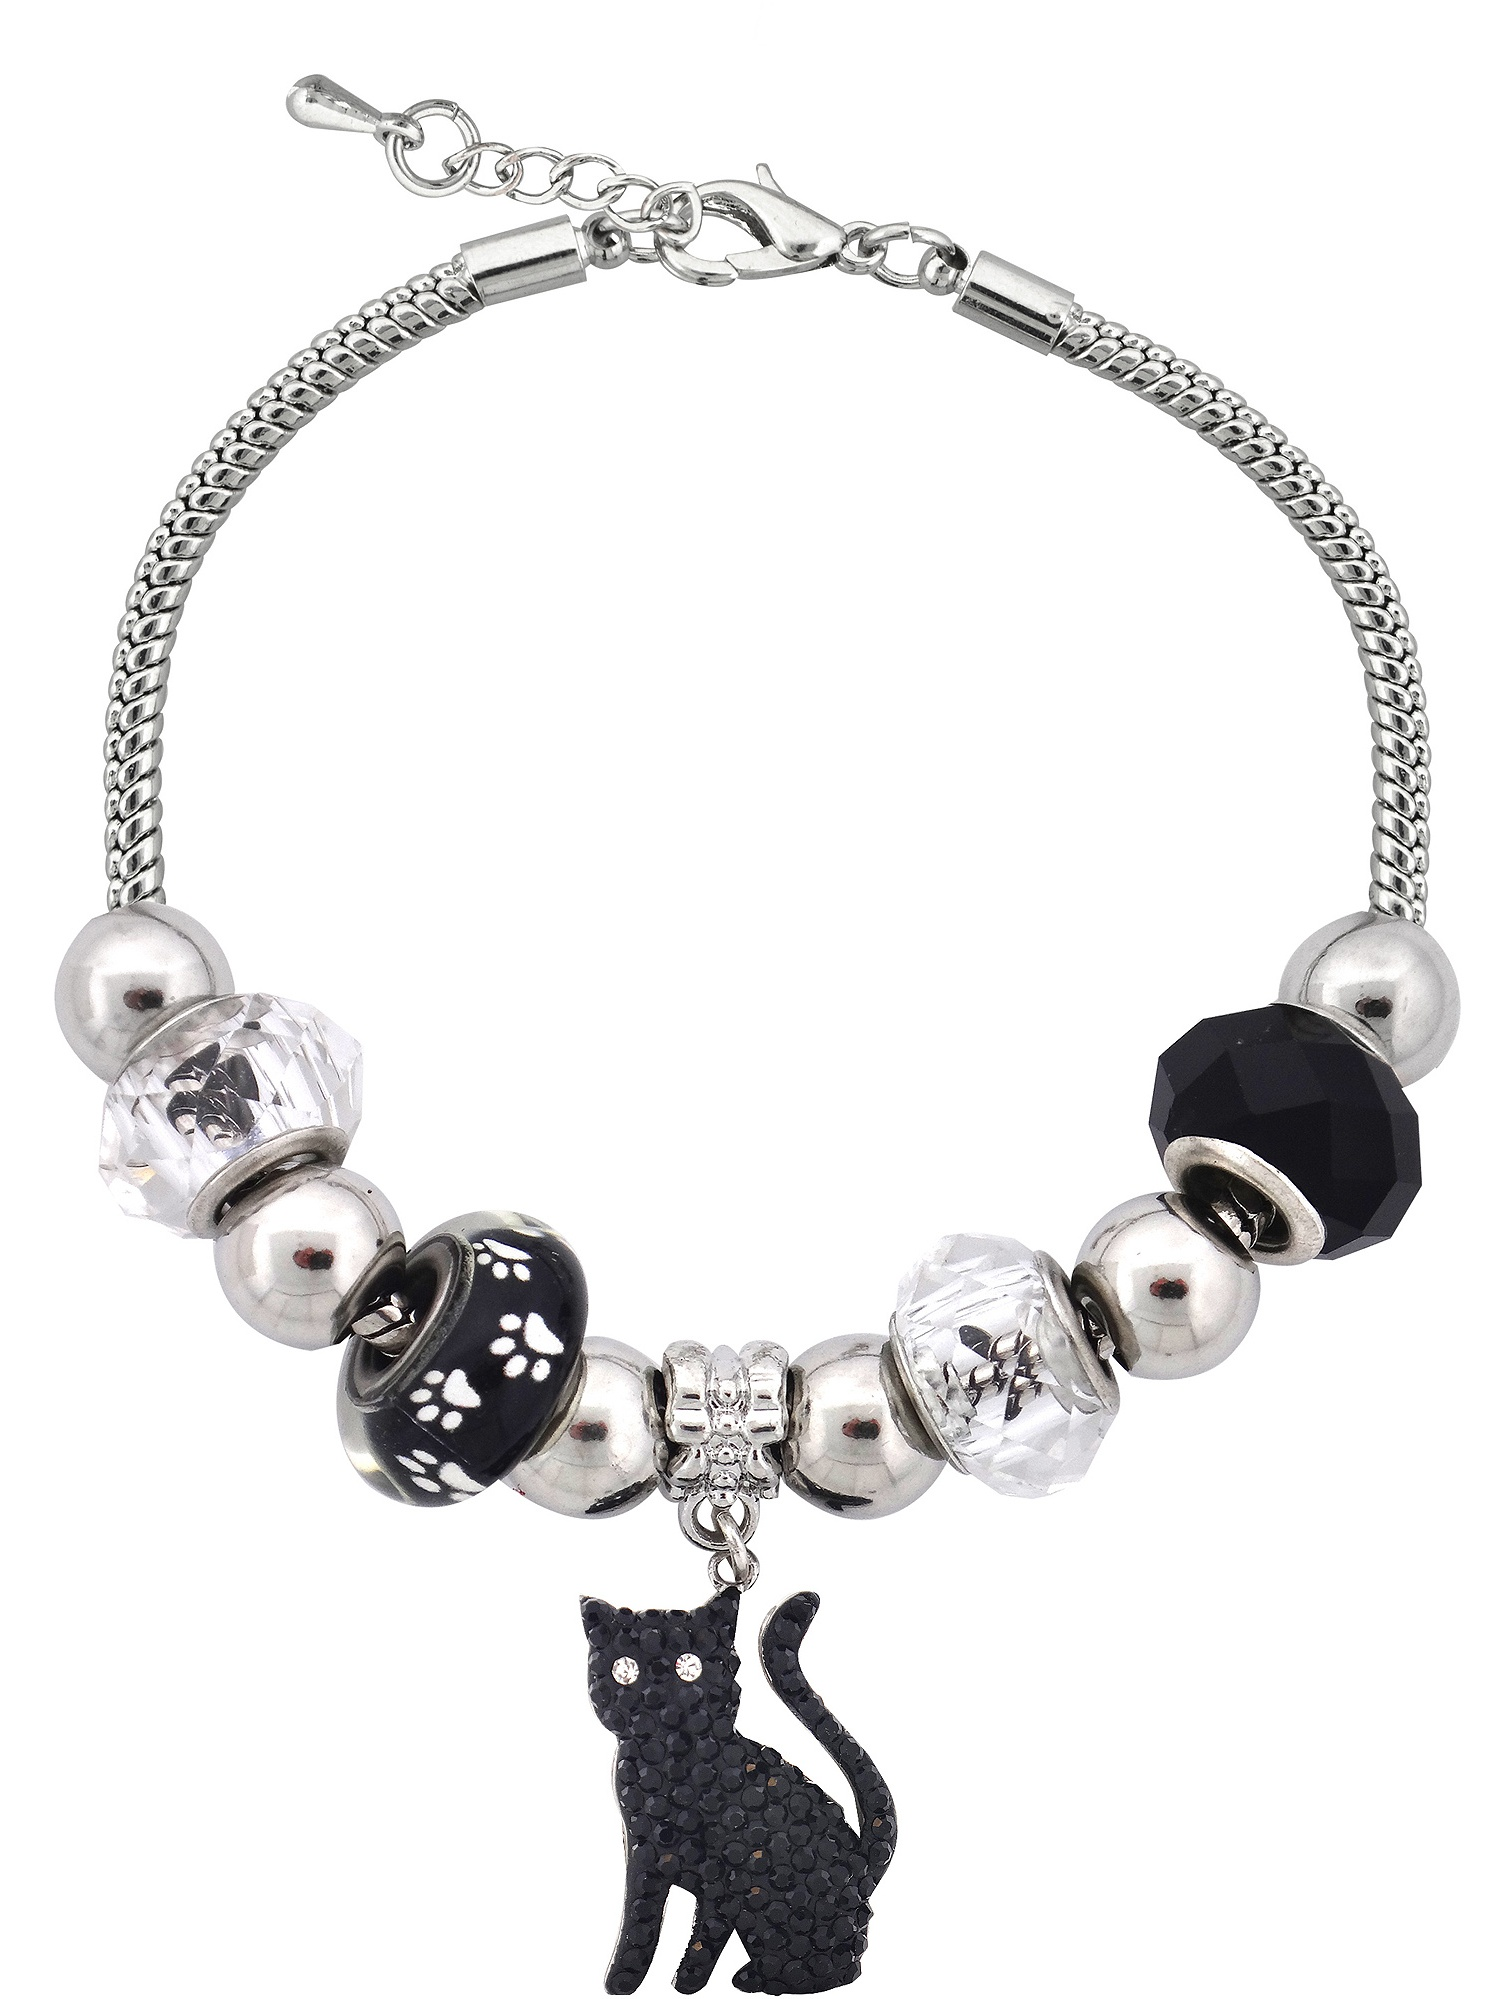 Silvertone Cat Charm and Glass Beads Bracelet With Extender, 7.5""